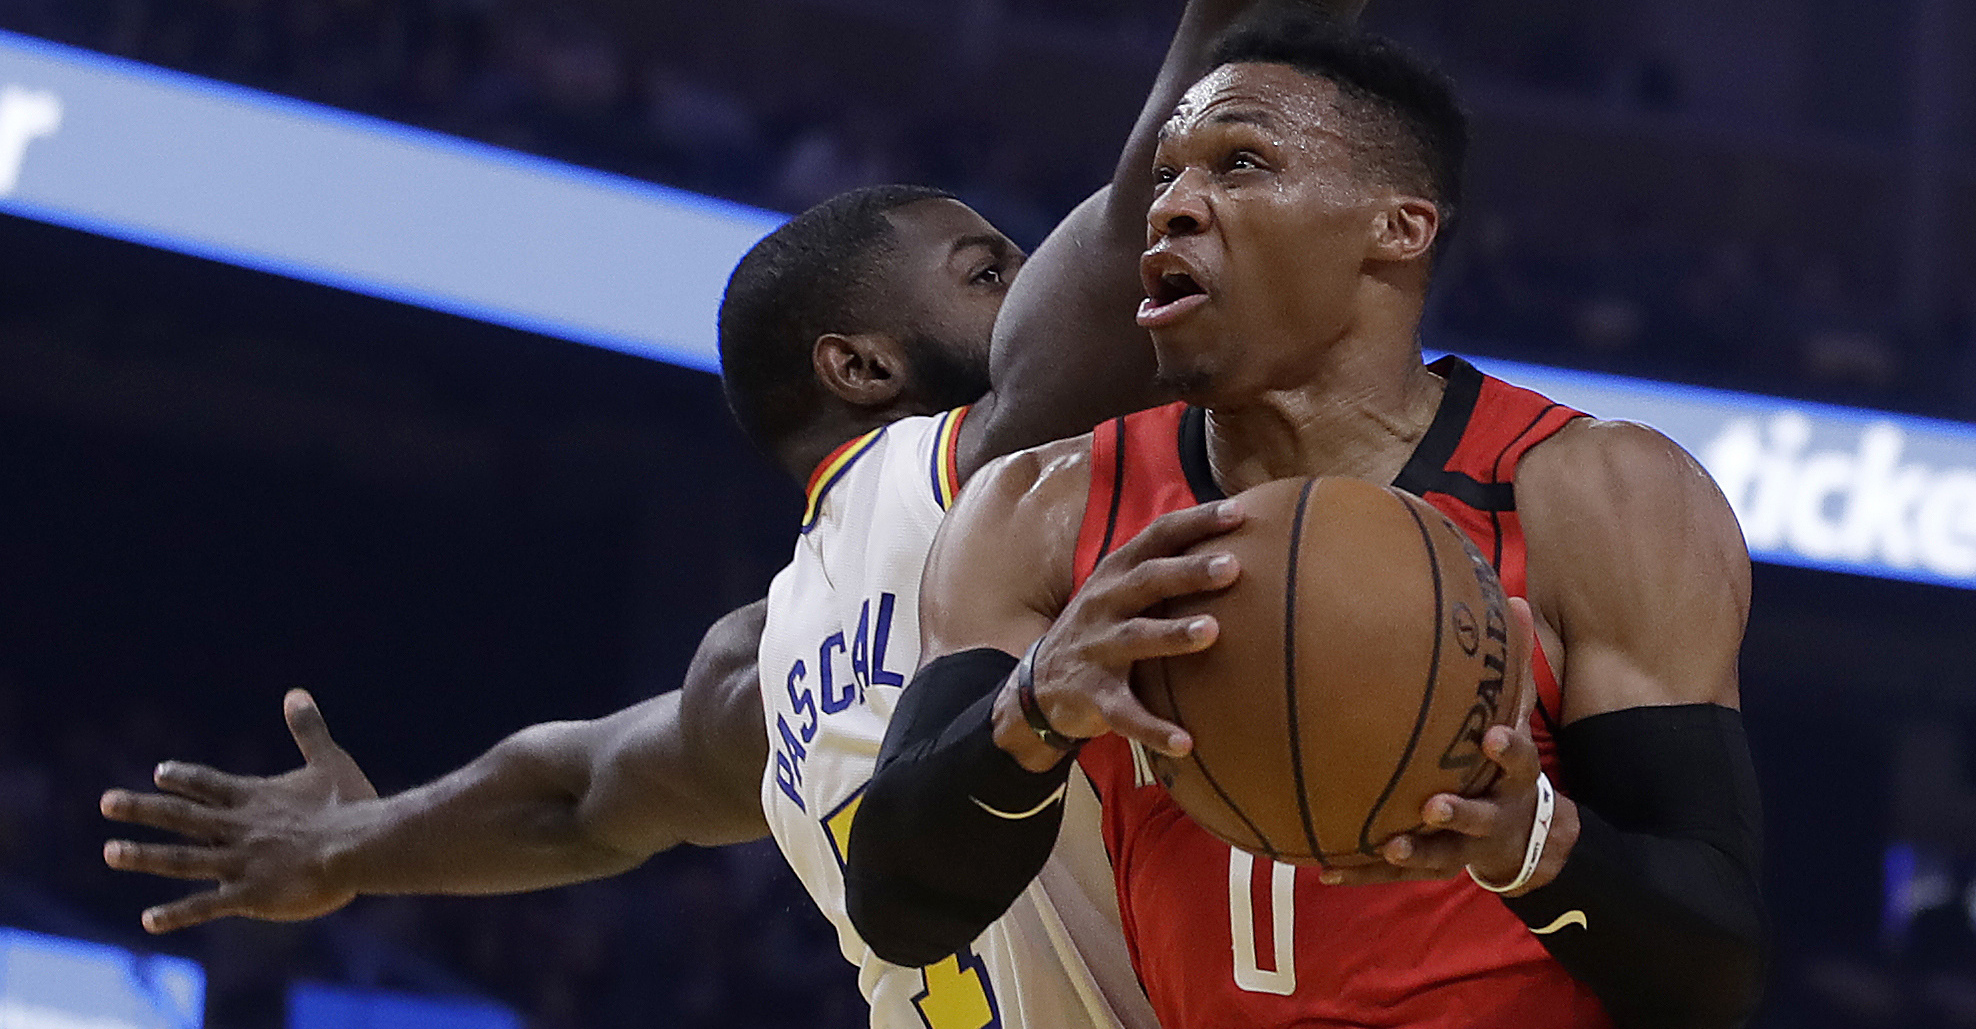 Rockets clobber Warriors in revenge game